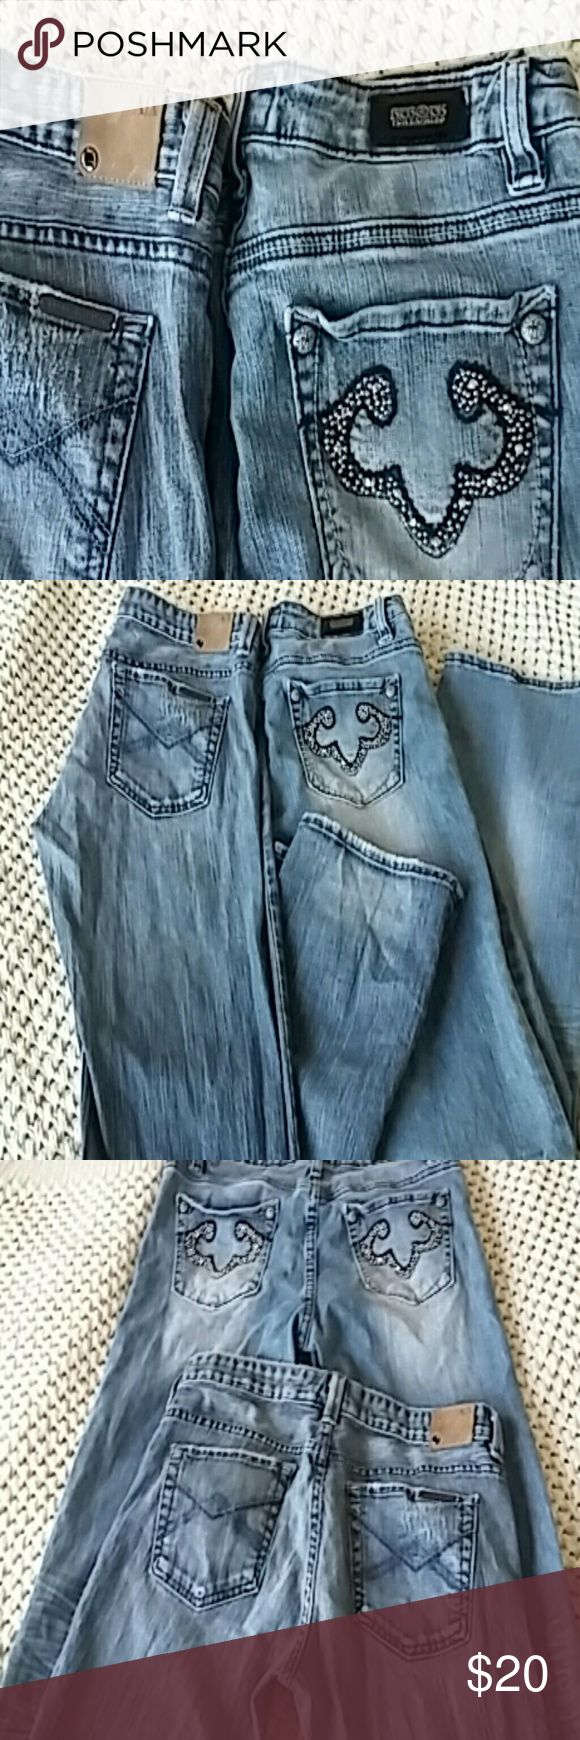 Armani Exchange and Rerocks Jeans Both in excellent condition! Armani pair has some distressing on front legs. They are a 10 long, potassium jean. The Express Rerocks were barely worn. They have a light boot cut and the Armani pair is a straight leg. Both have some stretch to them also. Armani Exchange Jeans Boot Cut